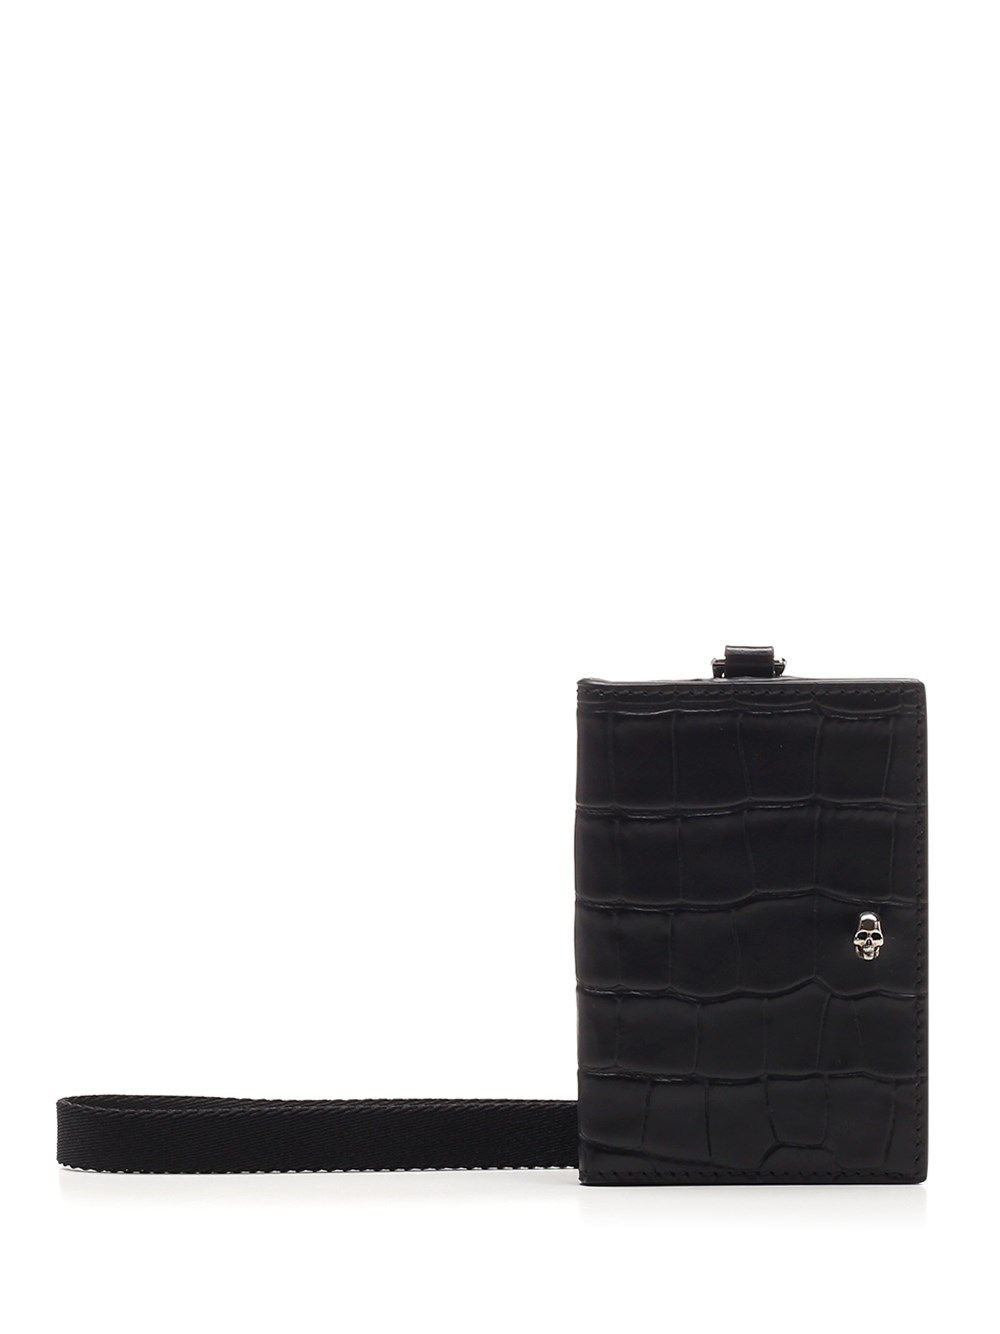 ALEXANDER MCQUEEN ALEXANDER MCQUEEN MEN'S BLACK OTHER MATERIALS WALLET